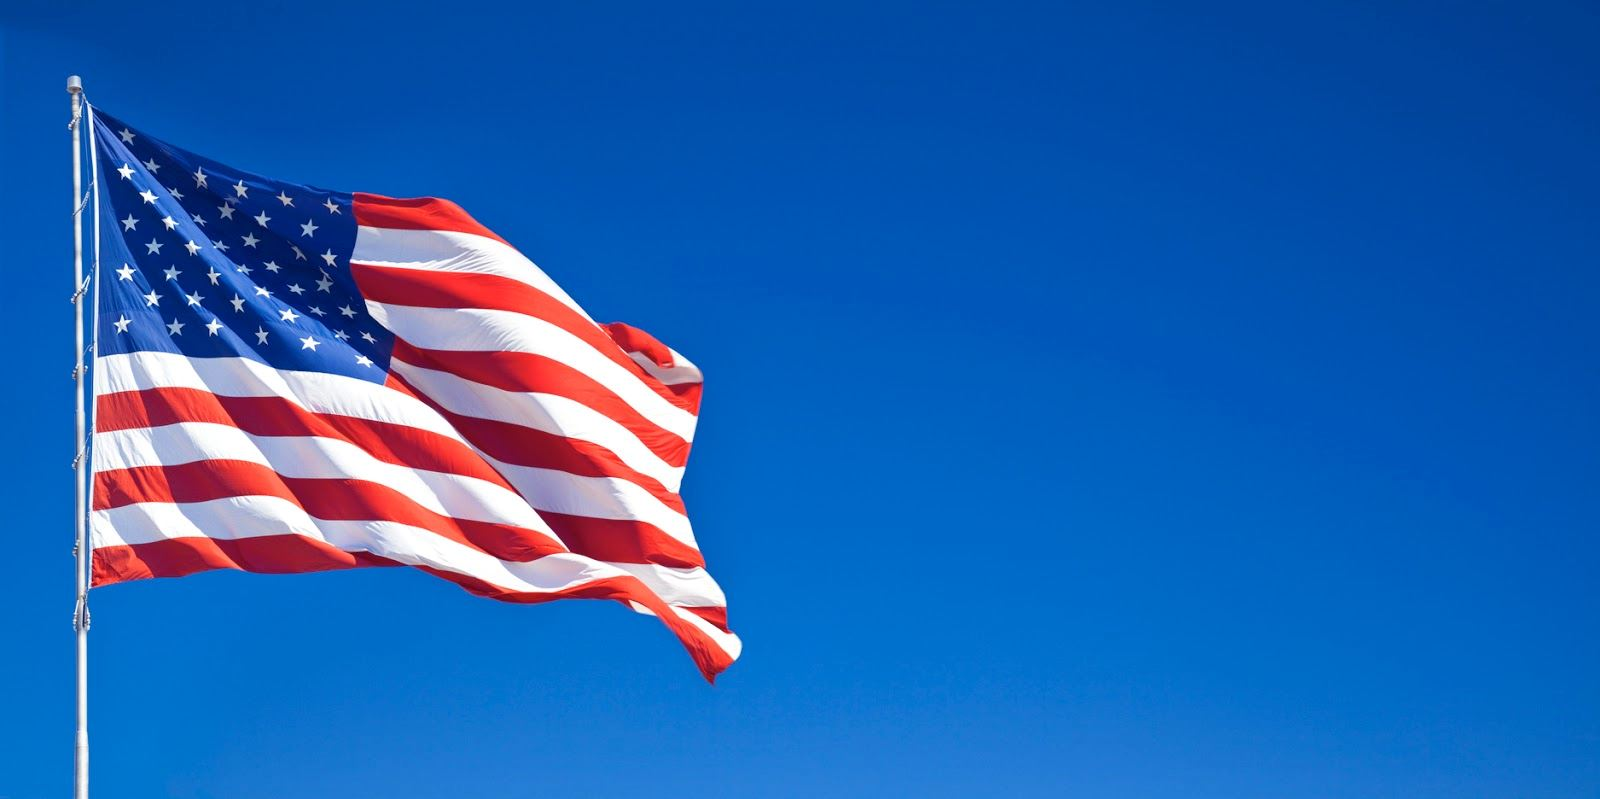 american-flag-waving-blue-sky